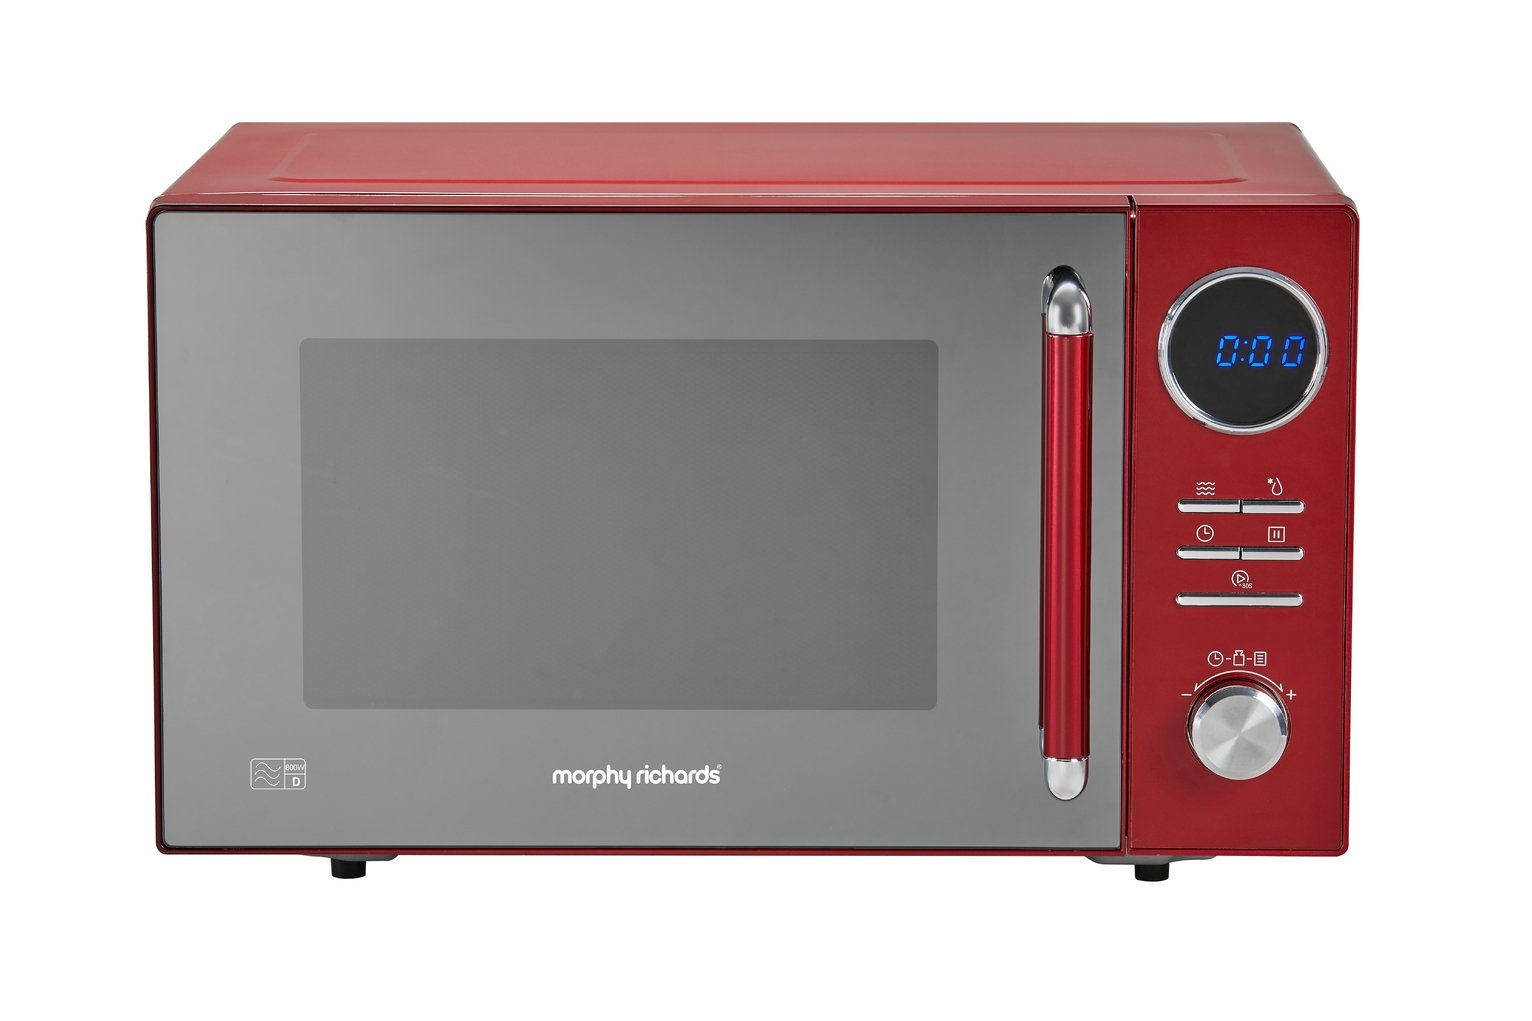 Morphy Richards 800W Standard Microwave - Red